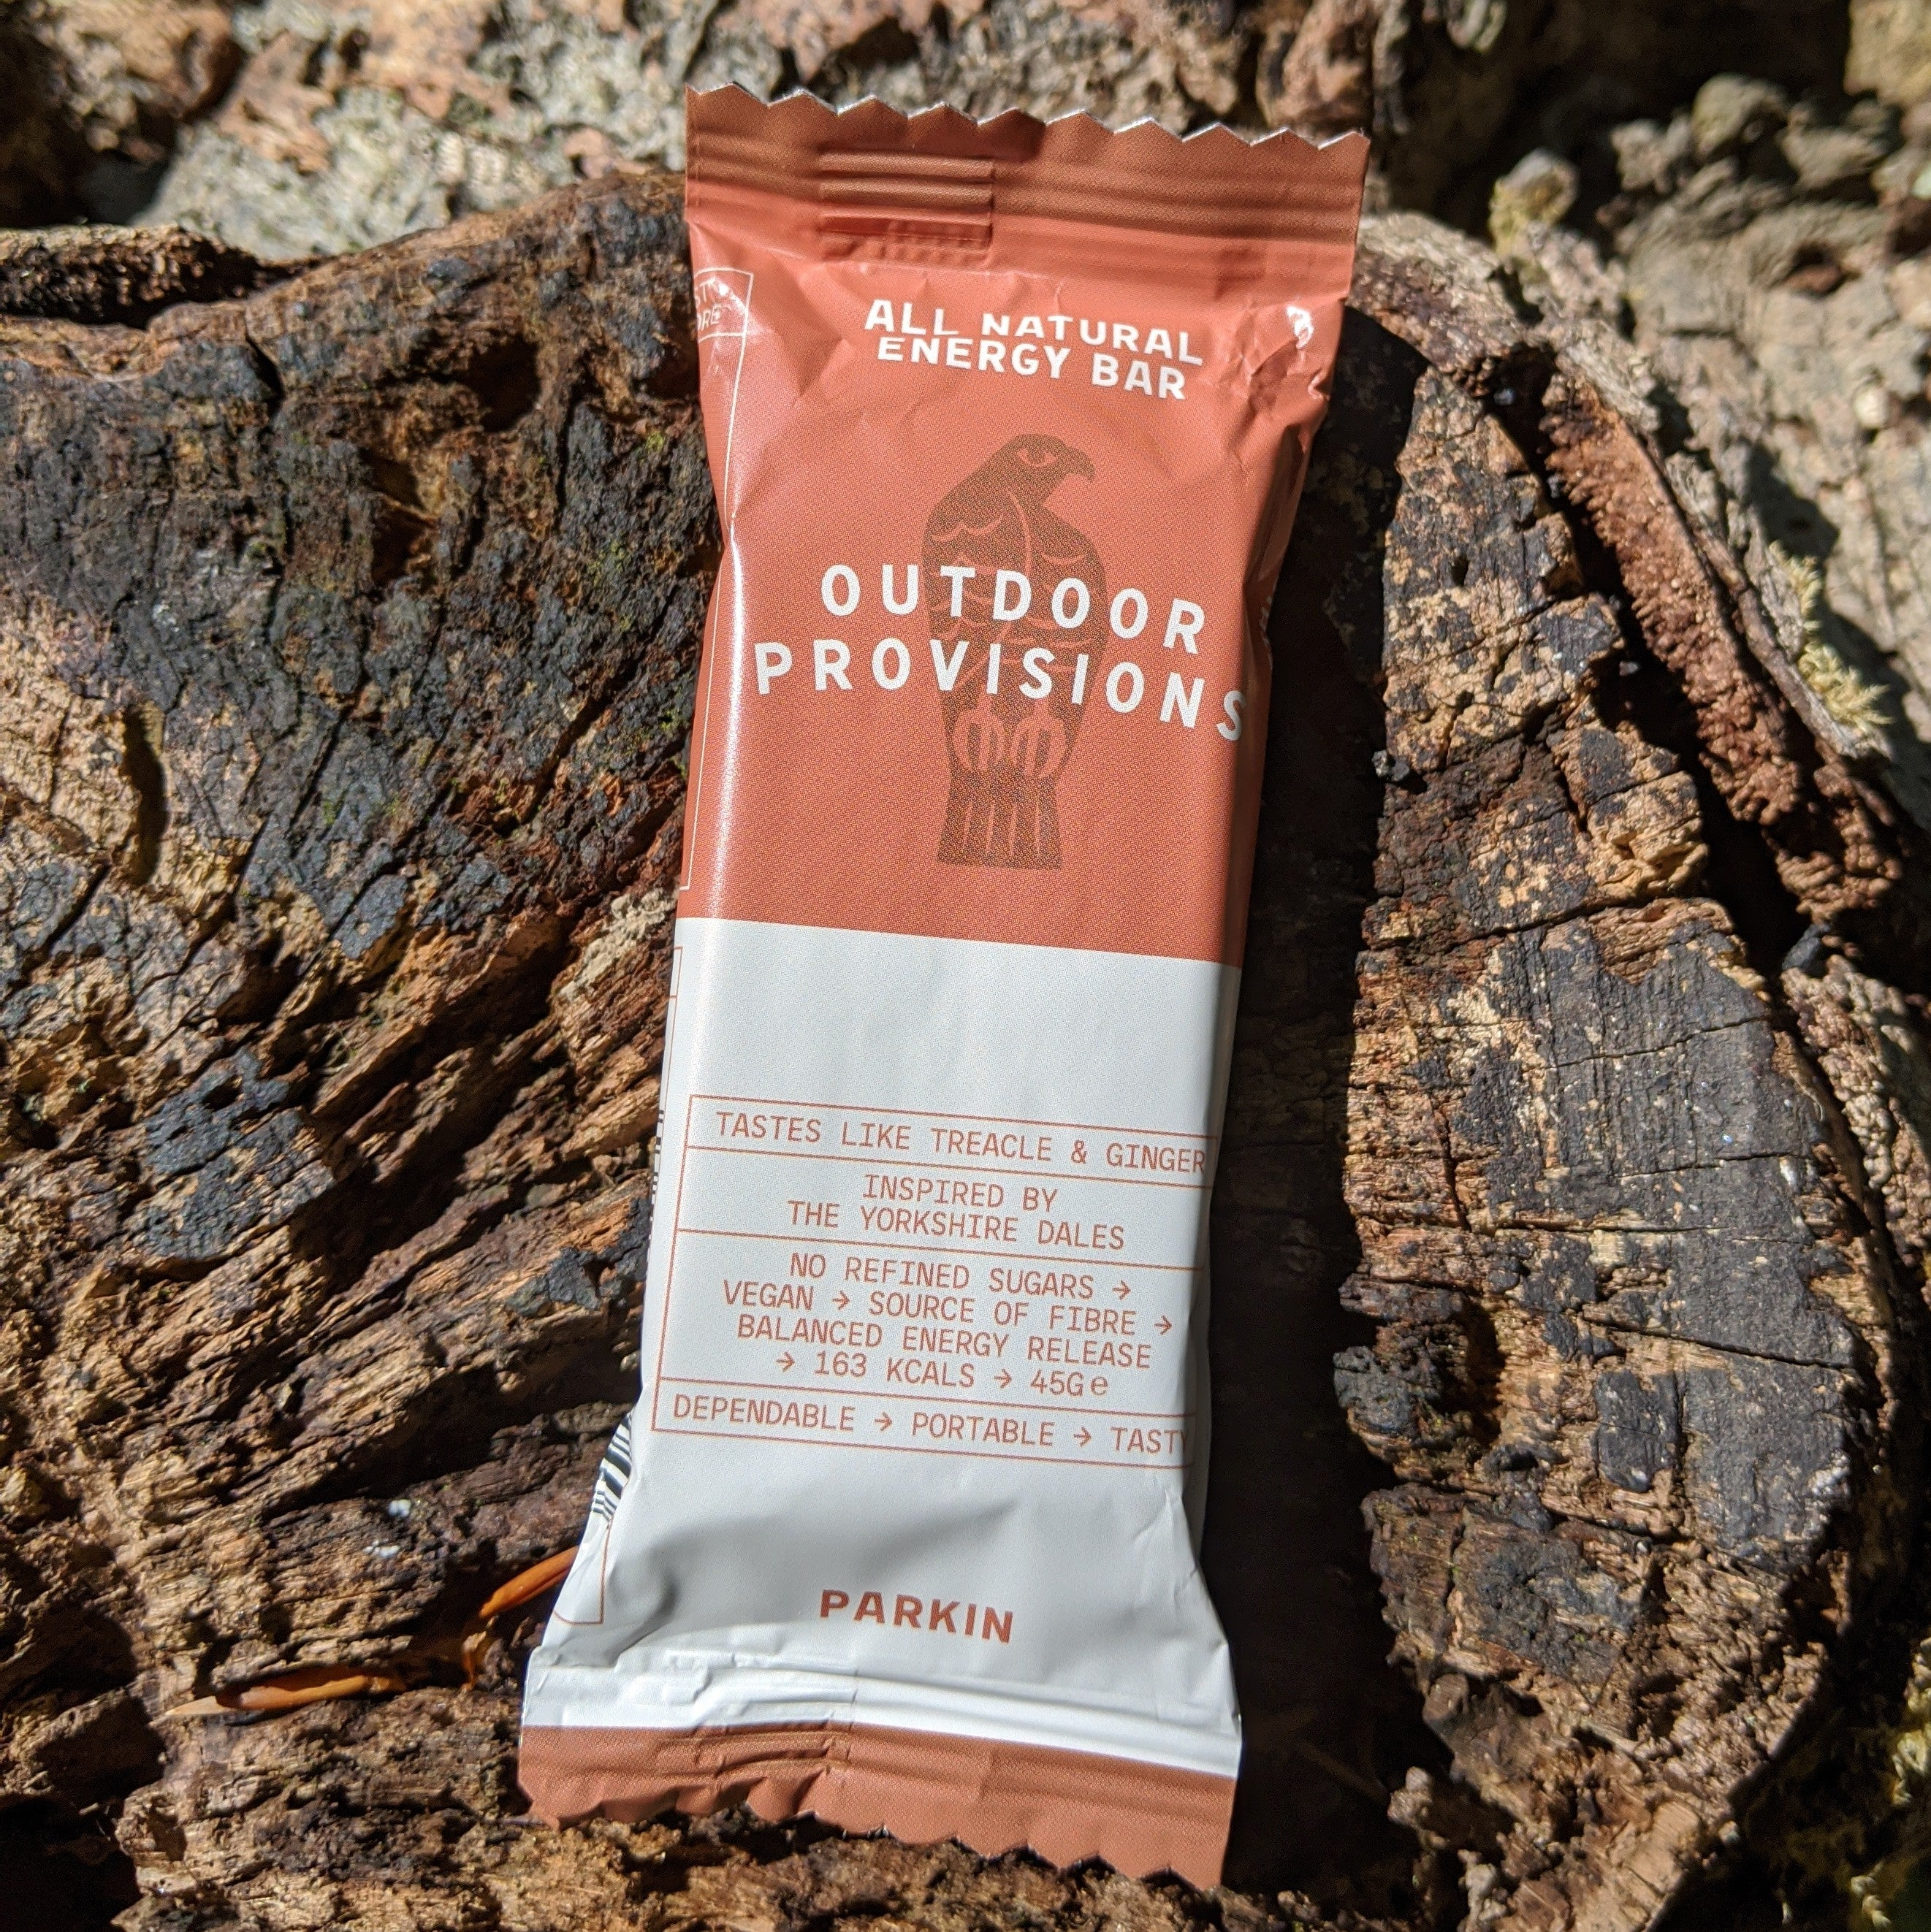 Outdoor Provisions natural energy bar -  Parkin